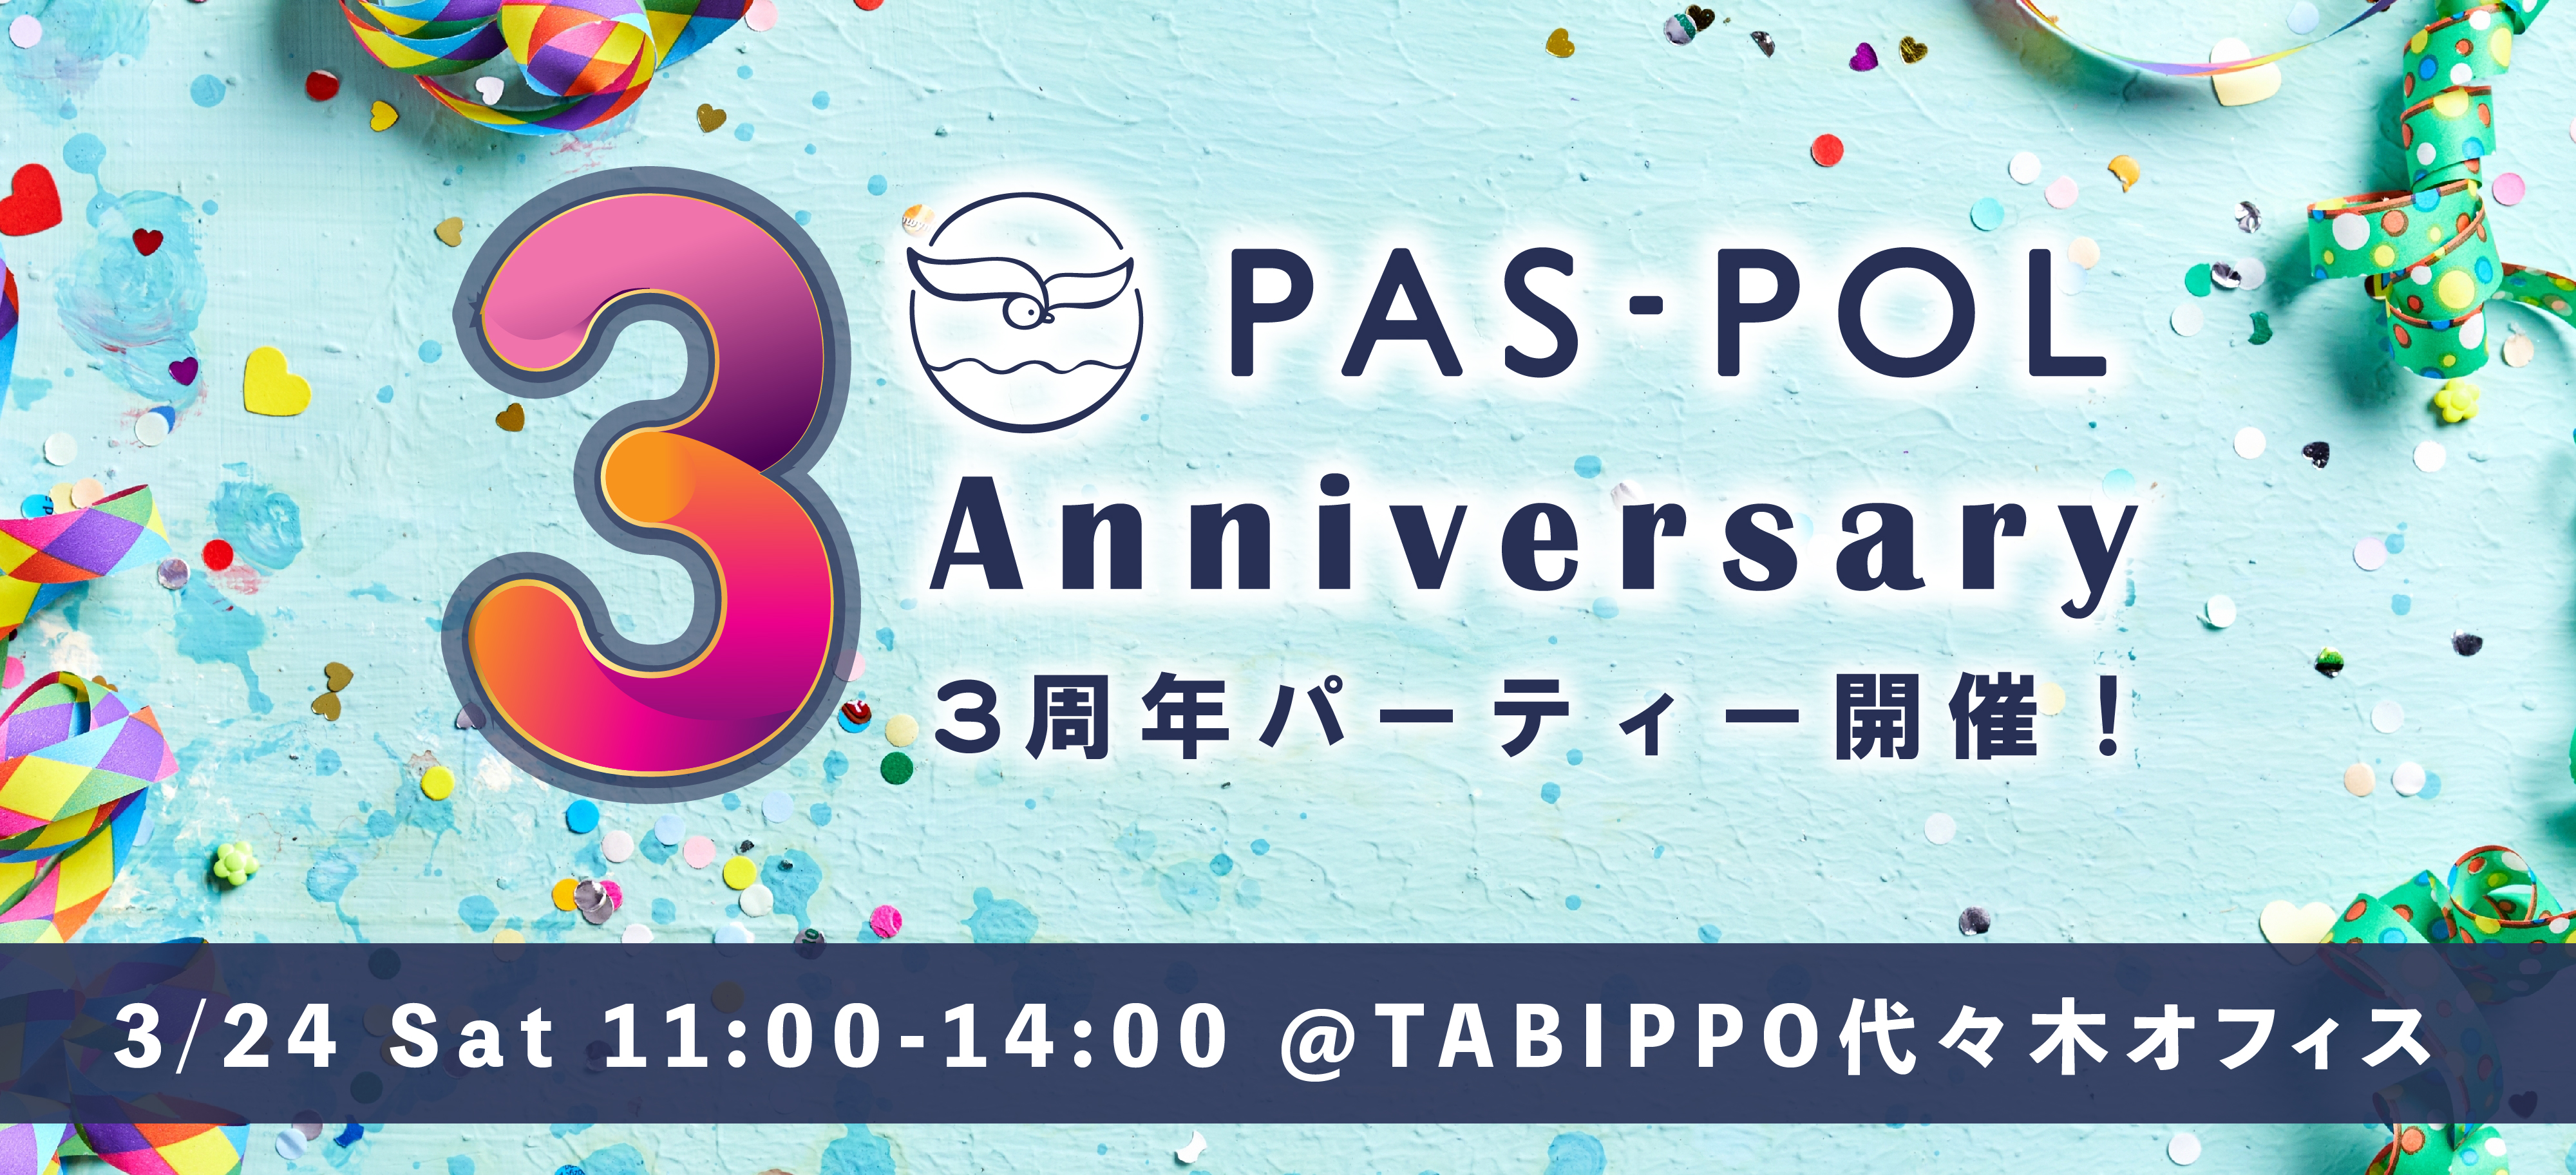 paspol3yrparty-01